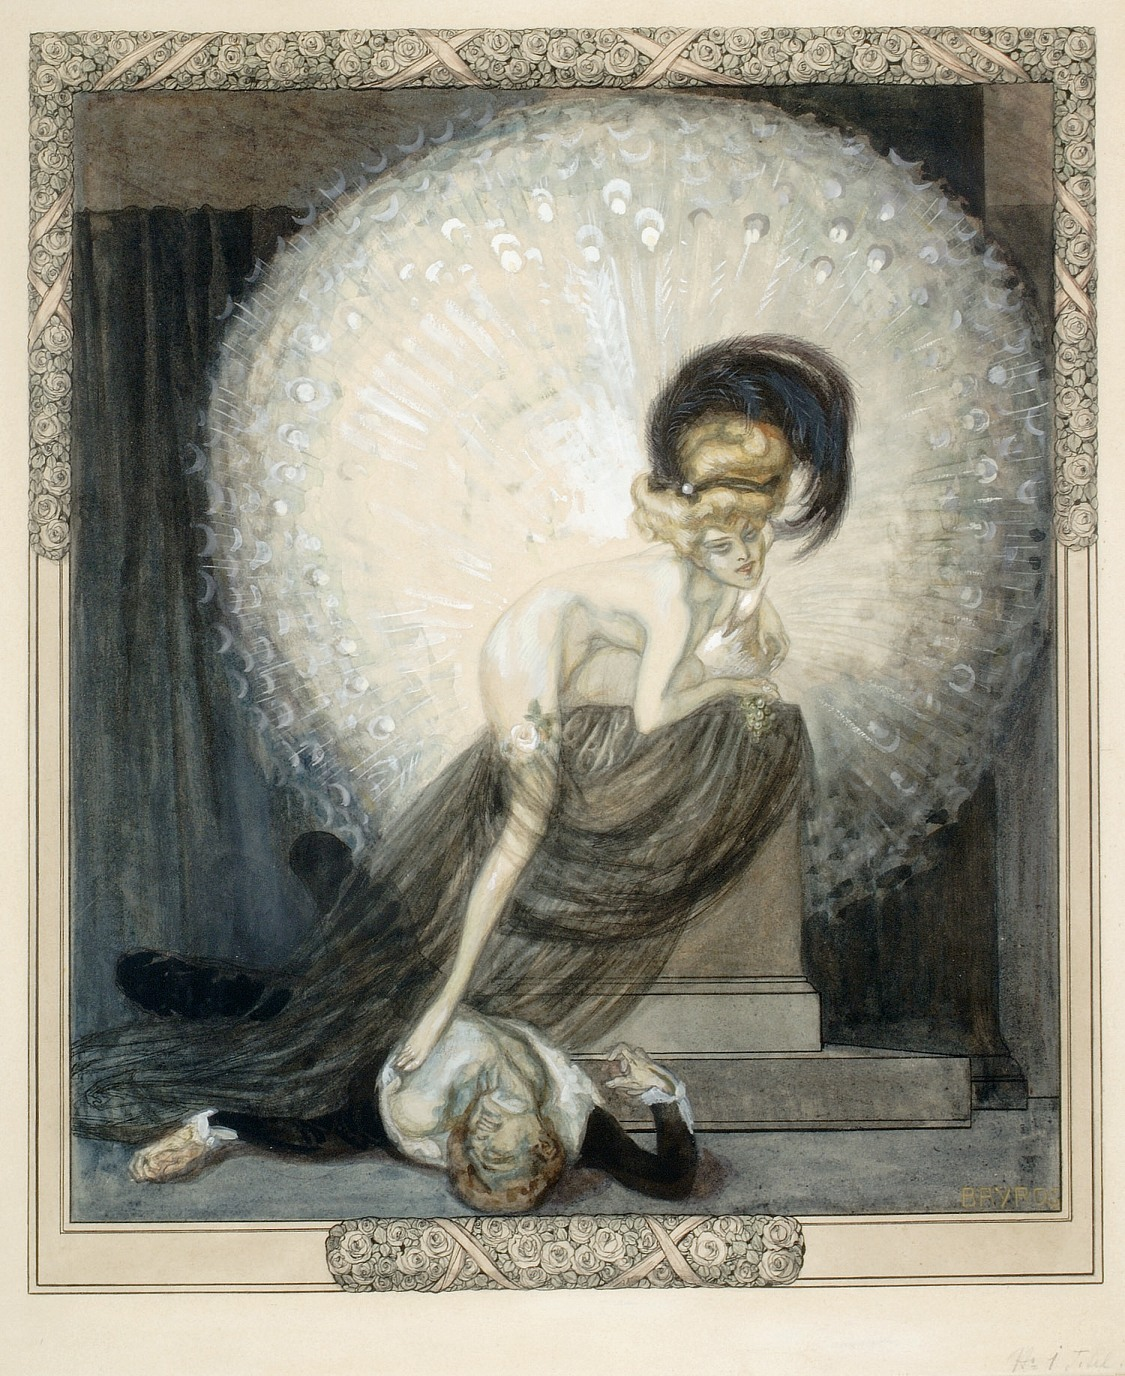 Marquis von Bayros, The White Peacock (1910)